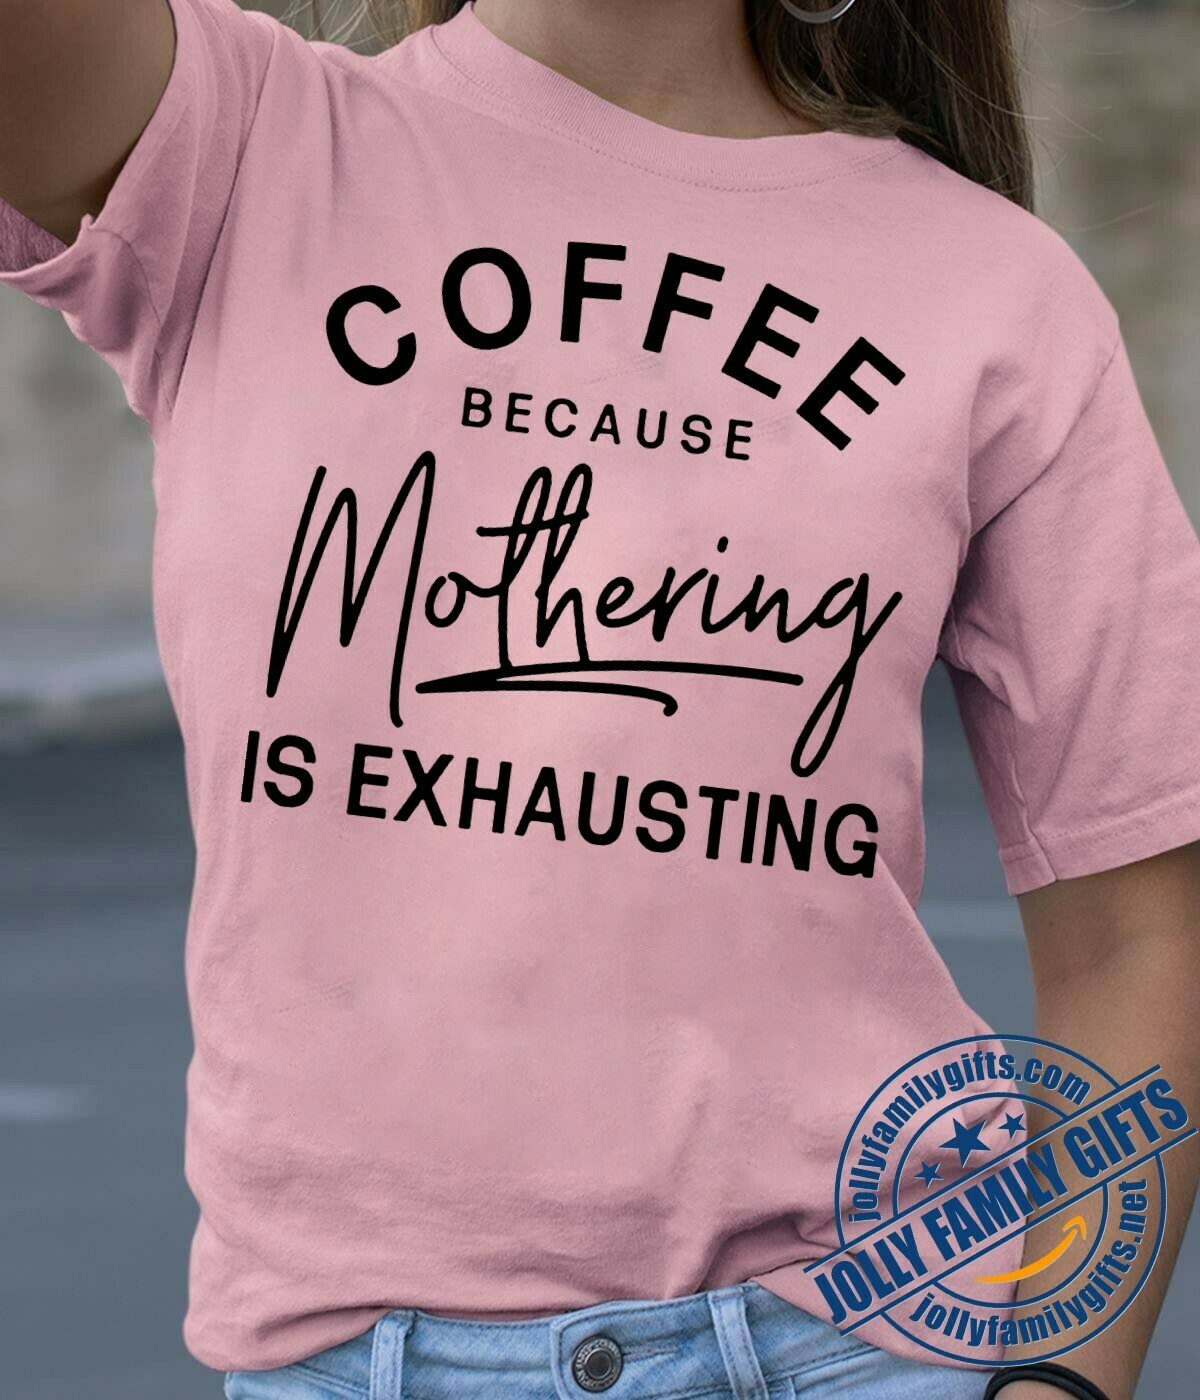 Coffee because mothering is exhausting shirt mother's day for her Unisex T-Shirt Hoodie Sweatshirt Sweater Plus Size for Ladies Women Men Kids Youth Gifts Tee Jolly Family Gifts